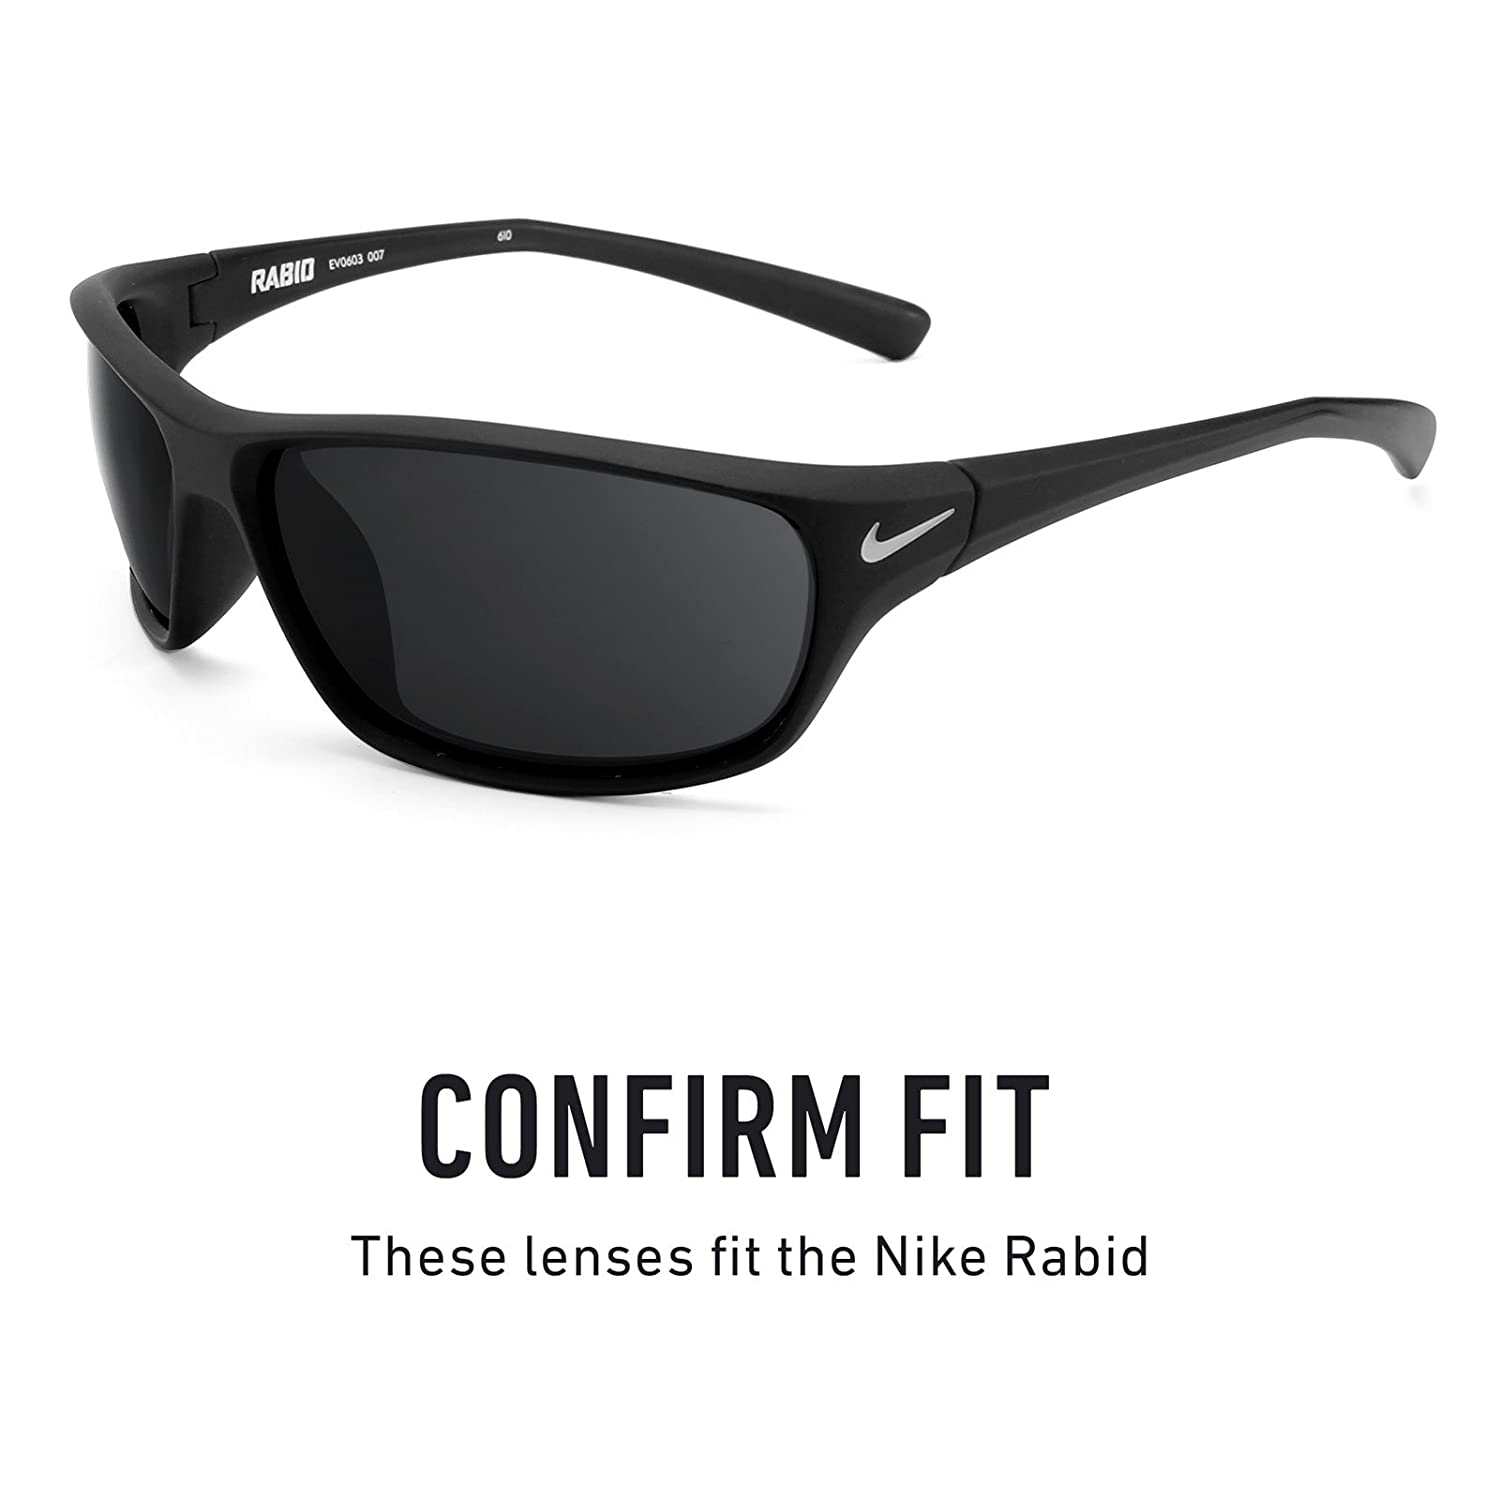 5e67fd9b36c Revant Polarized Replacement Lenses for Nike Rabid Elite Black Chrome  MirrorShield®  Amazon.co.uk  Clothing